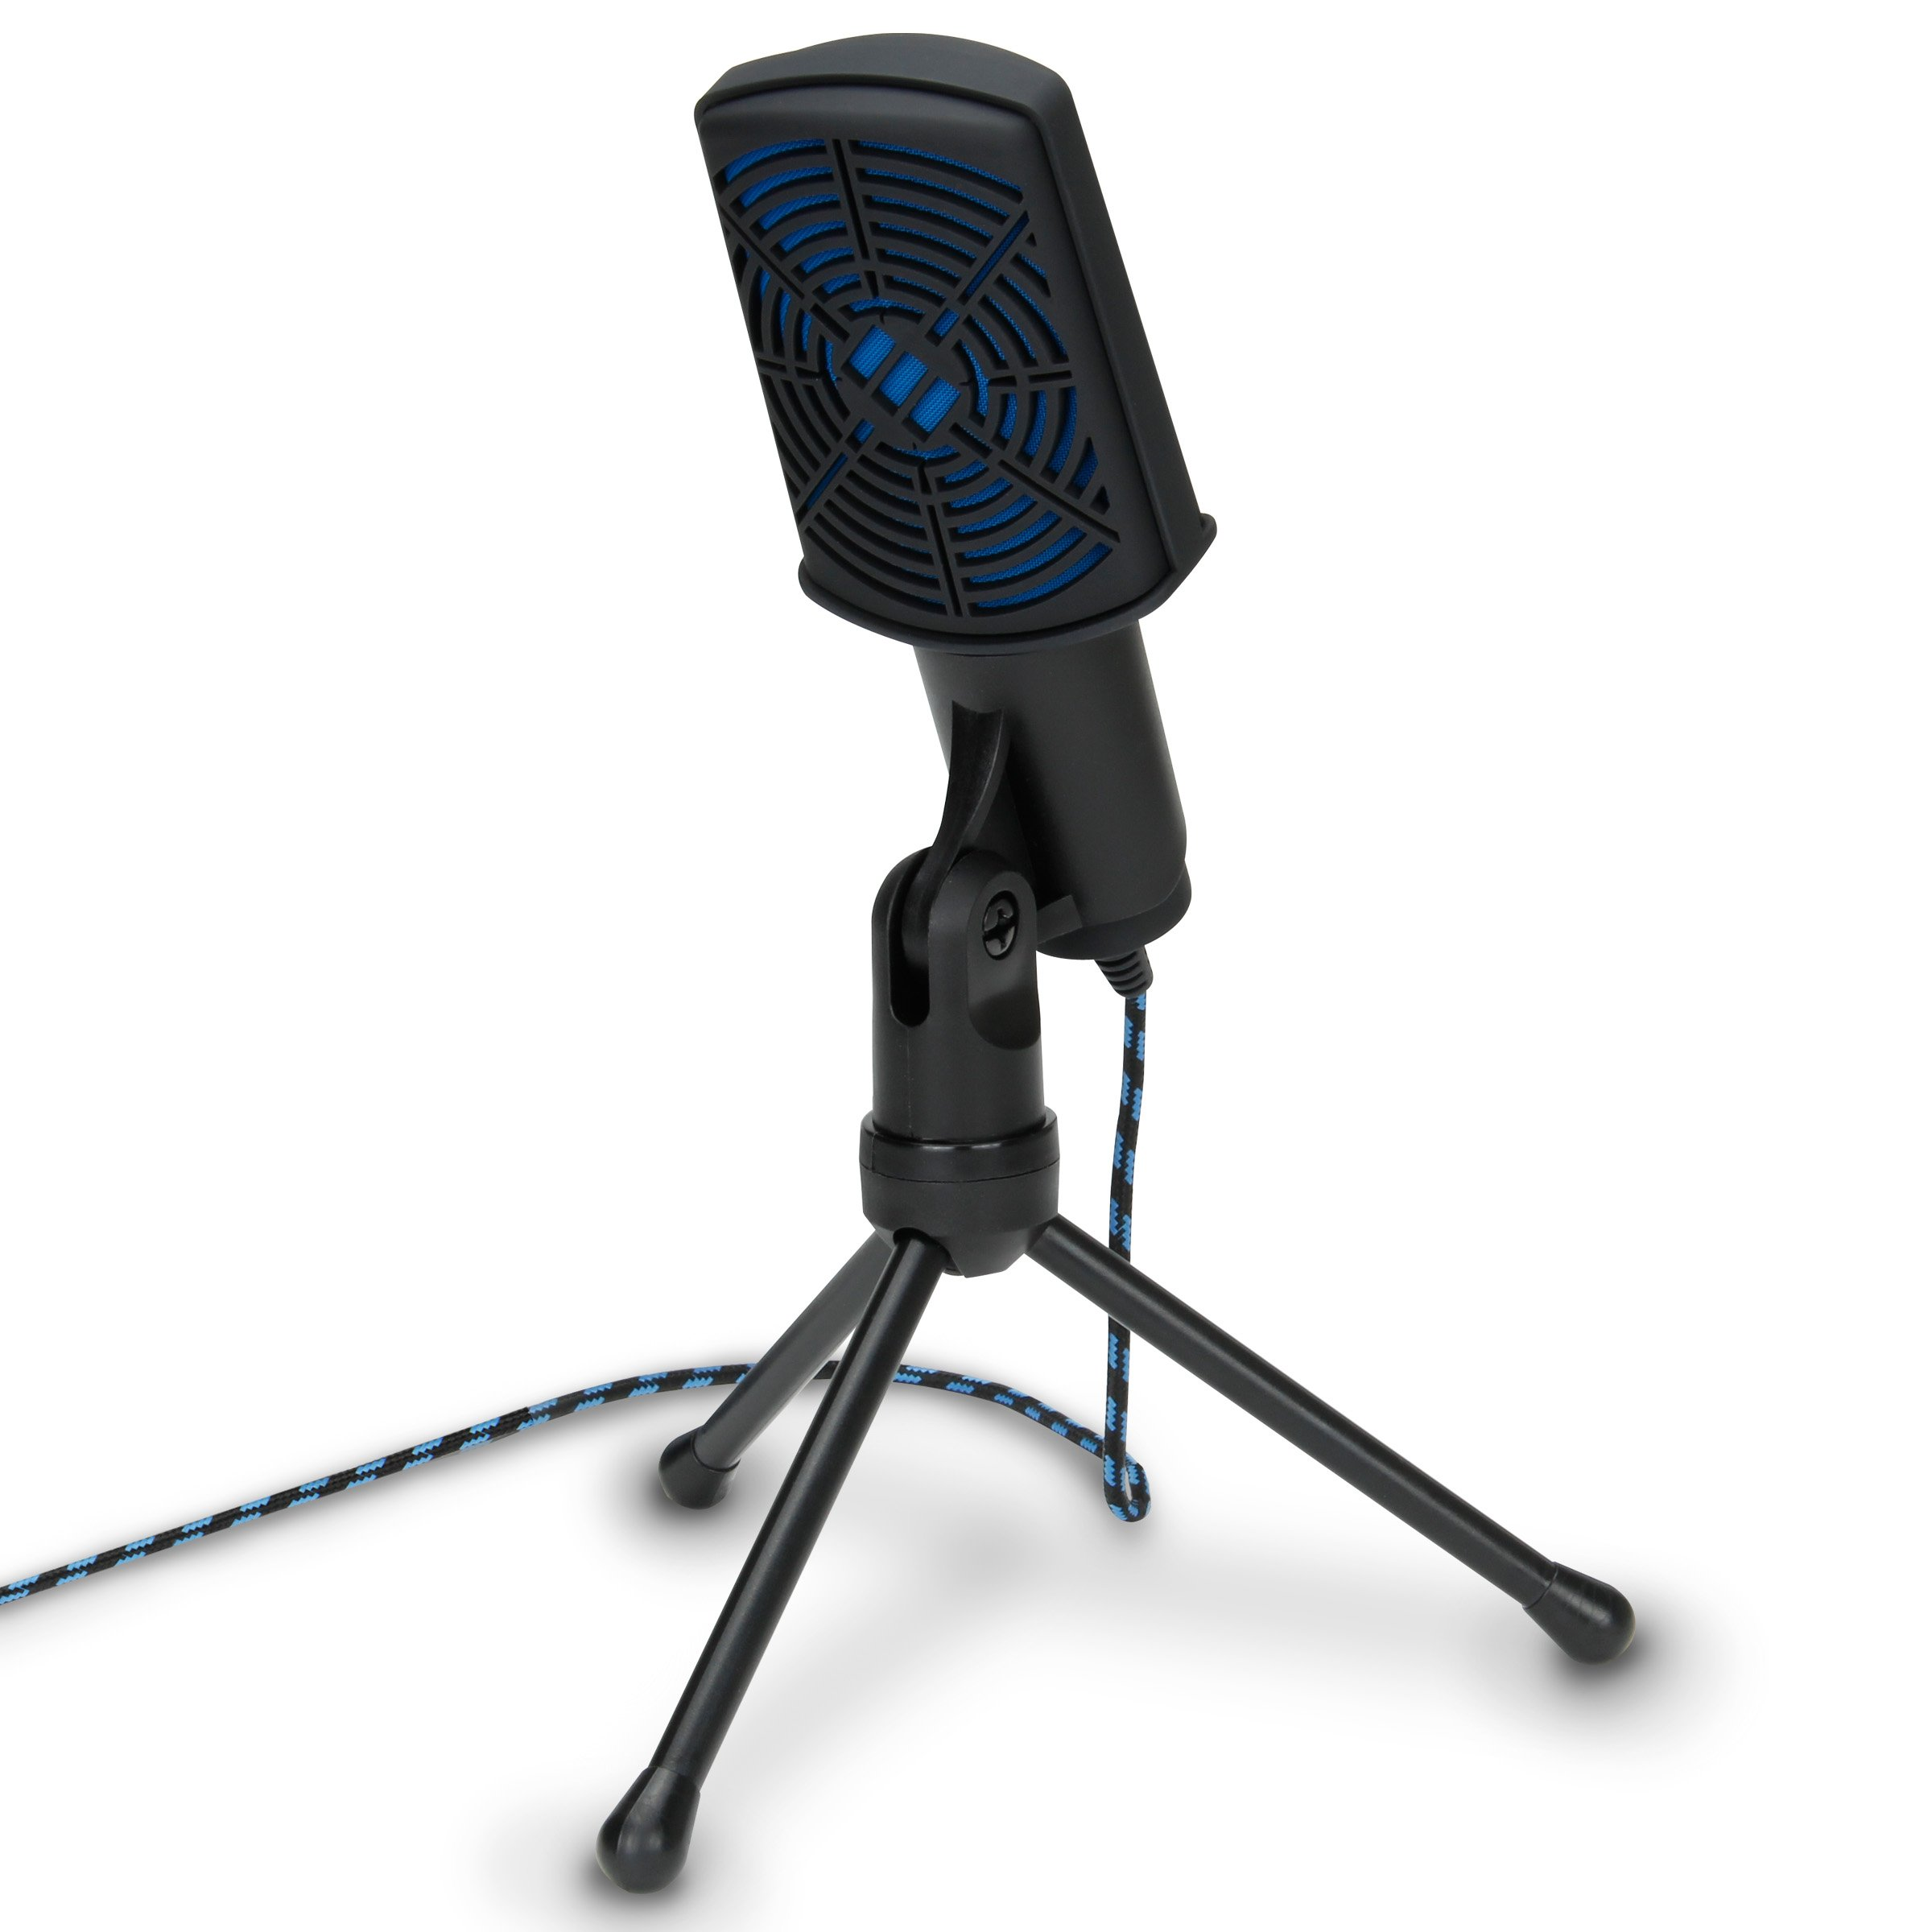 ENHANCE USB Condenser Gaming Microphone - Computer Desktop Mic for Streaming & Recording with Adjustable Stand Design and Mute Switch - For Skype, Conference Calls, Twitch, Youtube, and Discord - Blue by ENHANCE (Image #3)